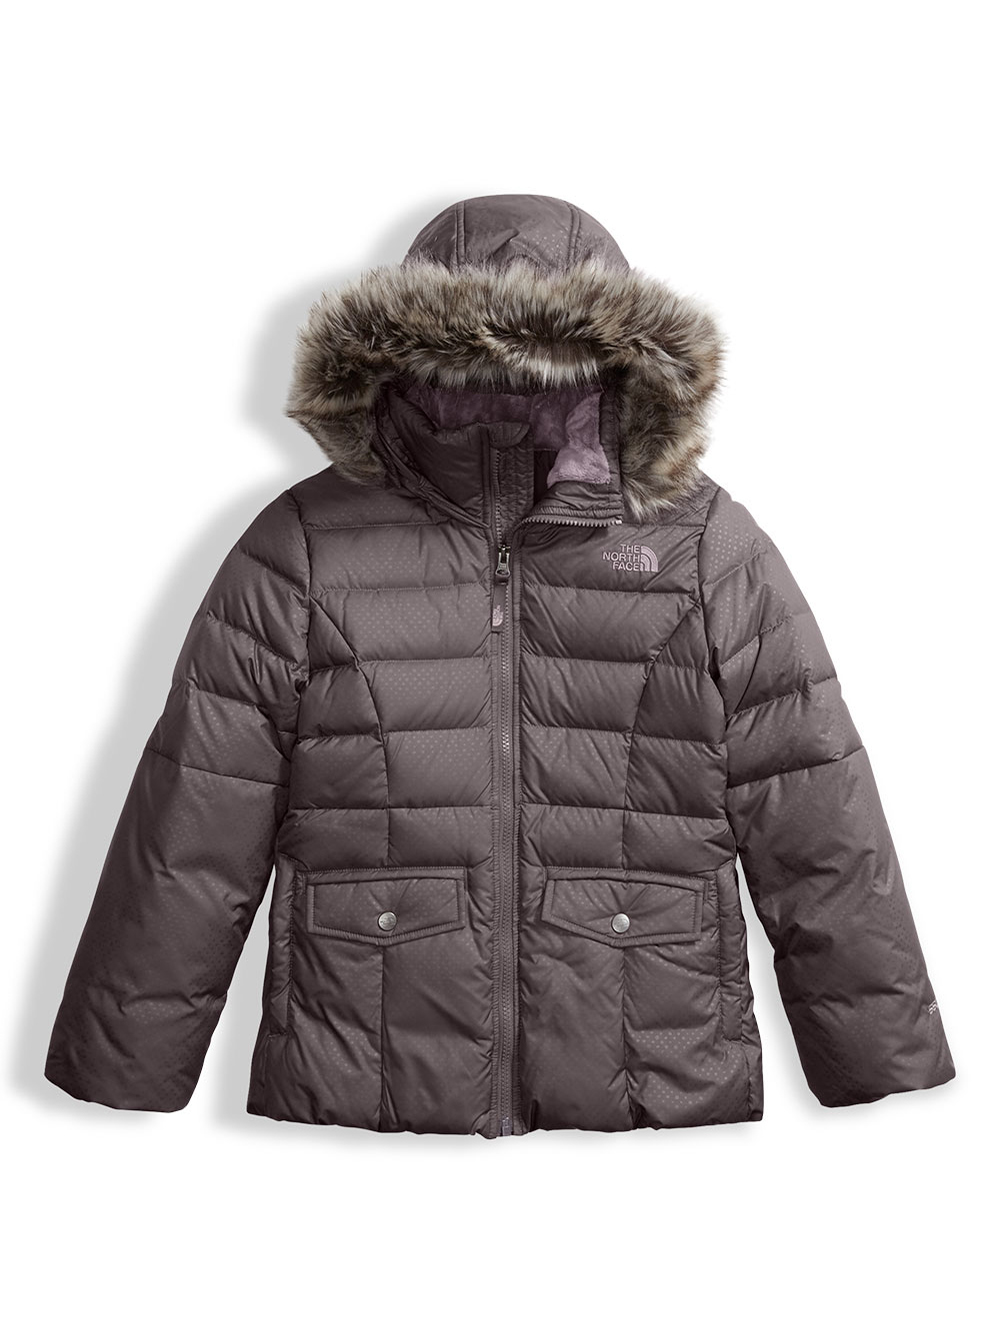 fe7e24b75 The North Face Big Girls' Gotham 2.0 Down Jacket (Sizes 7 – 18)